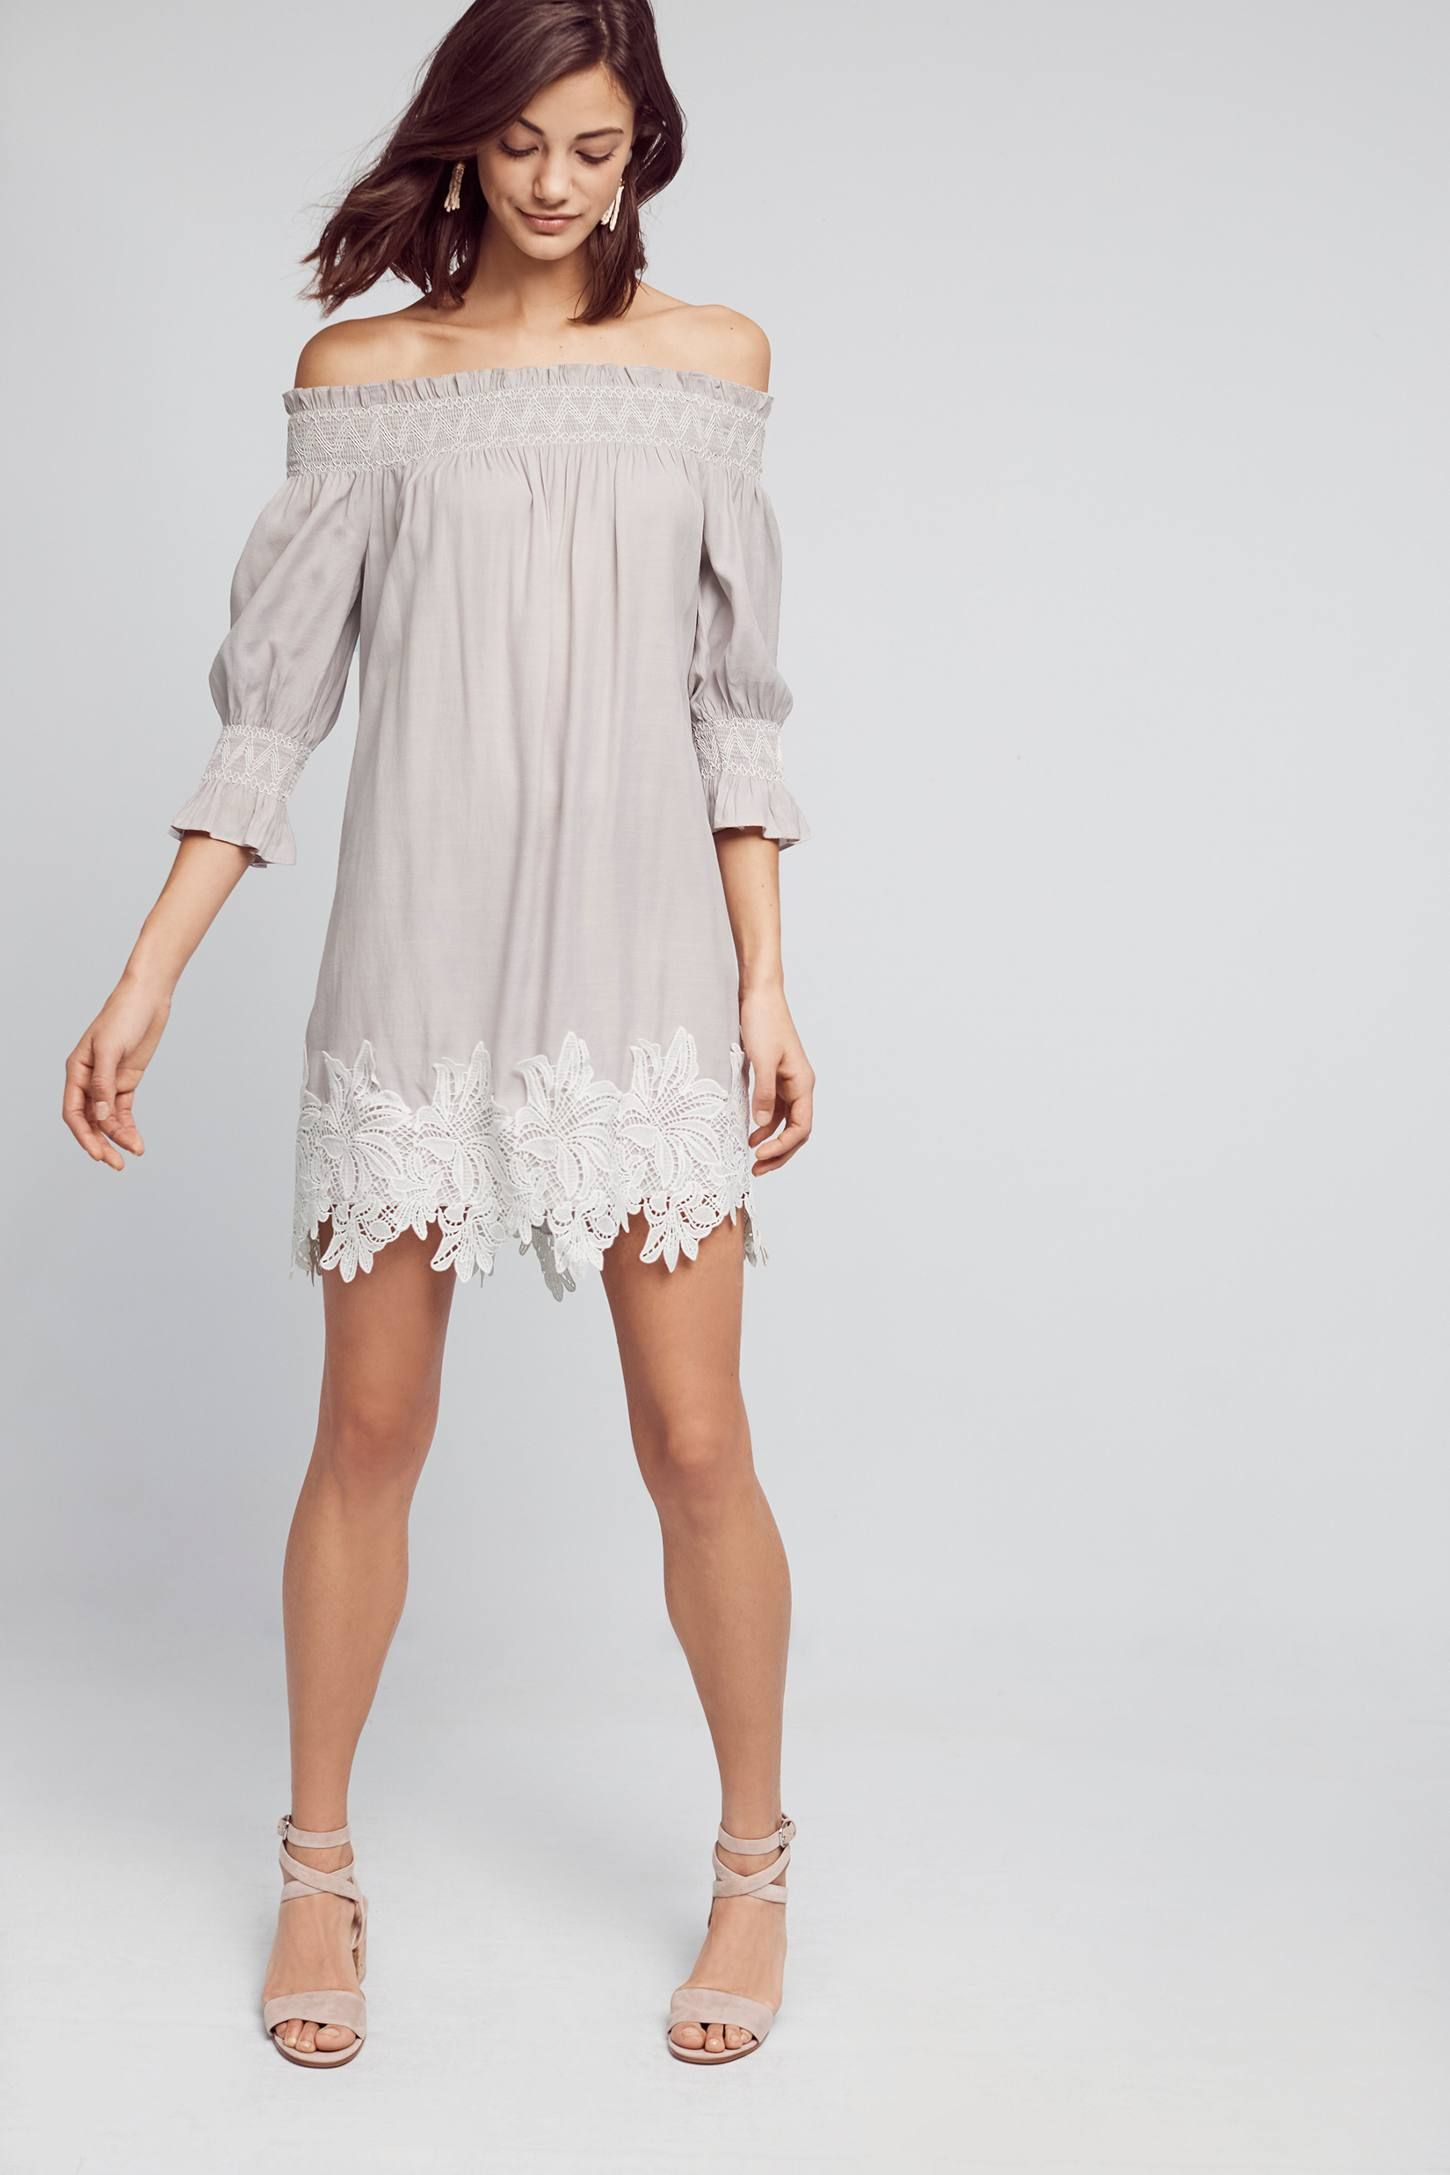 Shop the Madge Off-The-Shoulder Swing Dress and more Anthropologie at Anthropologie today. Read customer reviews, discover product details and more.